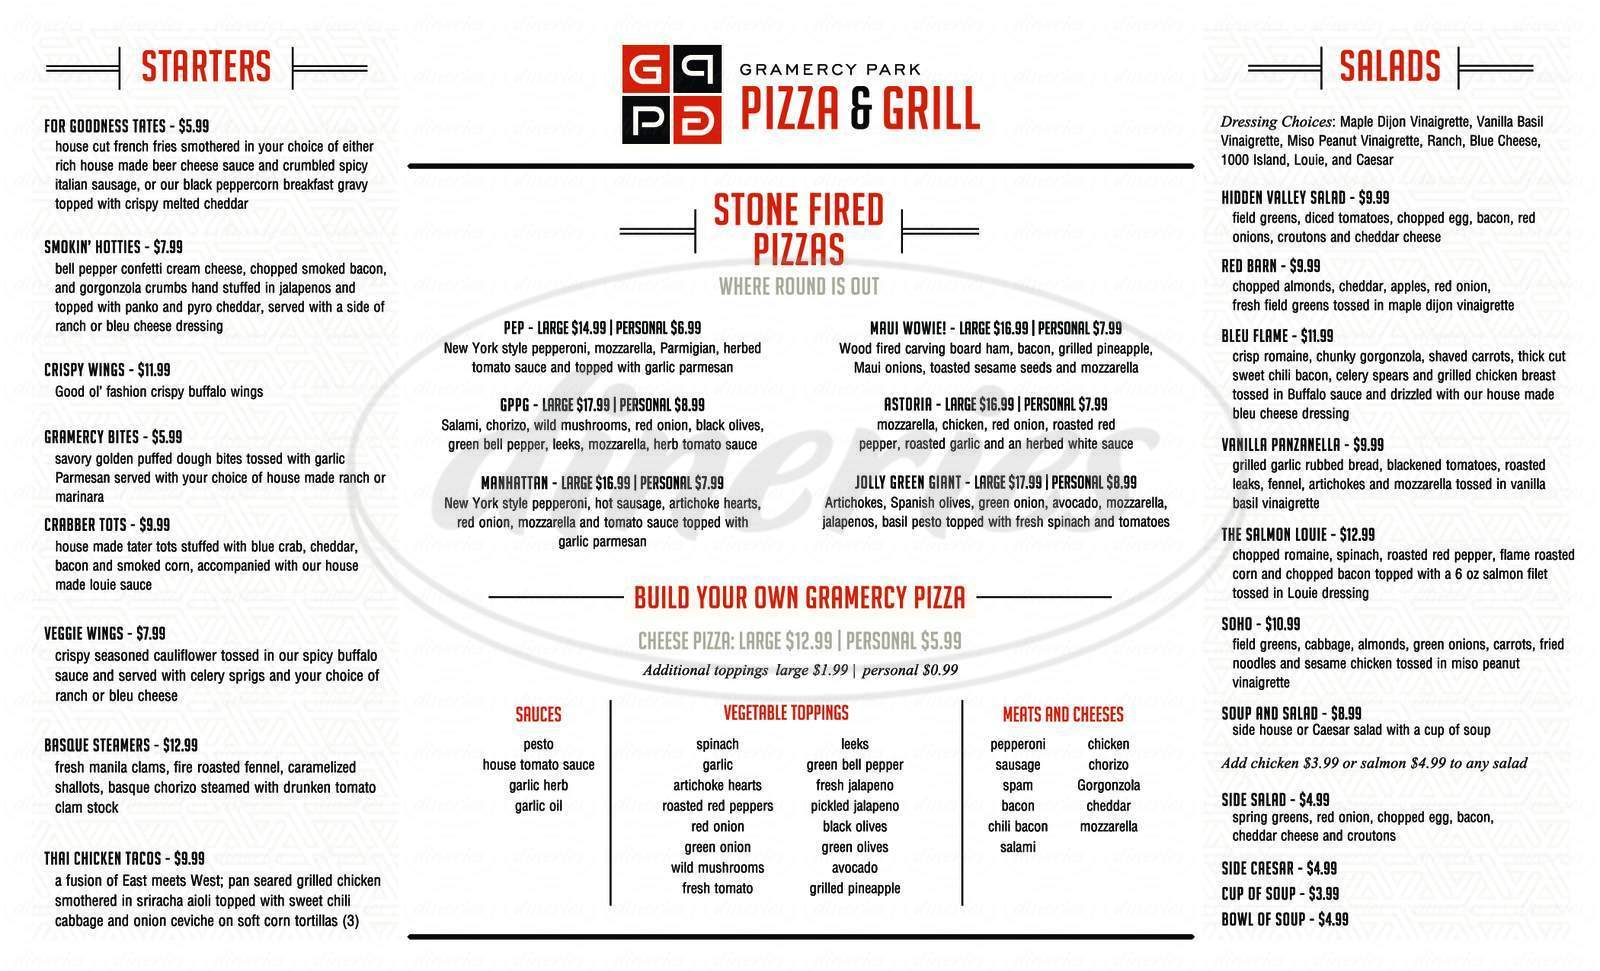 menu for Gramercy Park Pizza & Grill